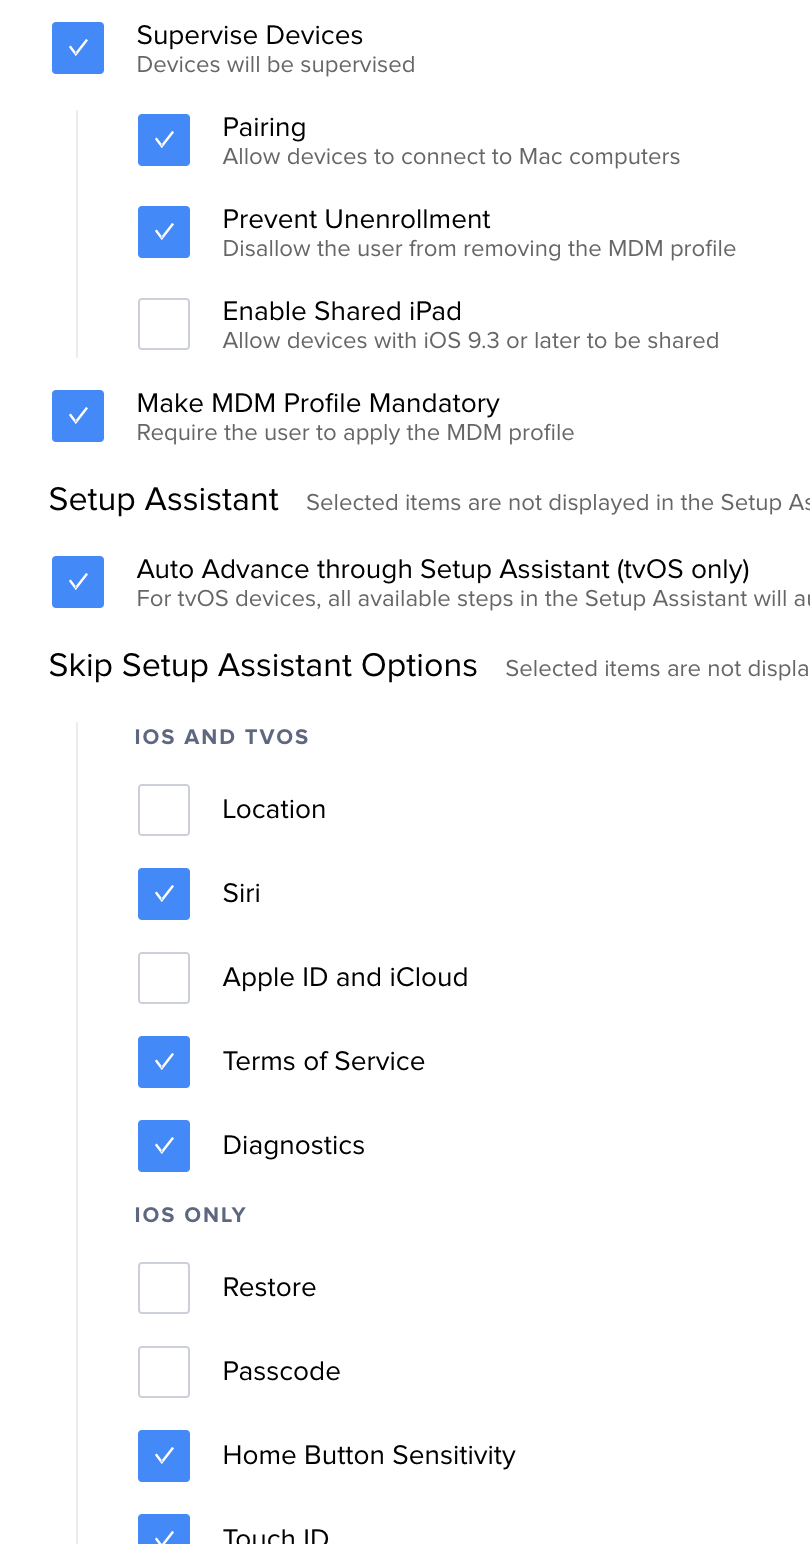 Restore From iCloud on Supervised Device | Discussion | Jamf